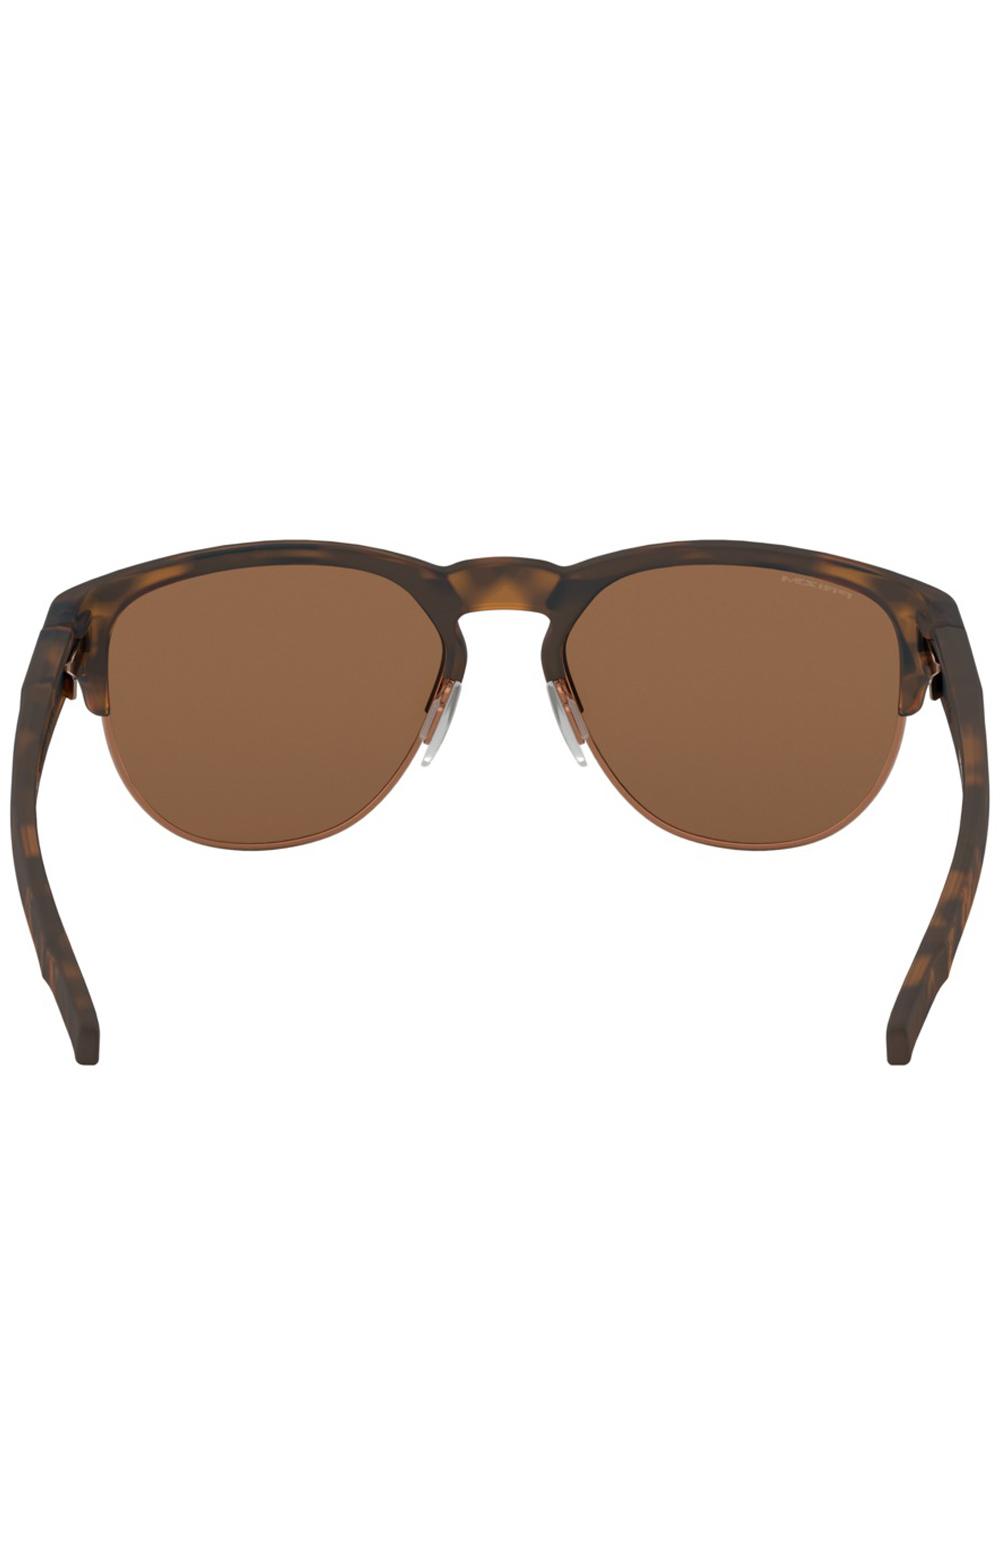 167d9901c2b Latch Key L Sunglasses - Matte Brown Tortoise Prizm Tungsten. Thumbnail 1  Thumbnail 1 Thumbnail 1 ...